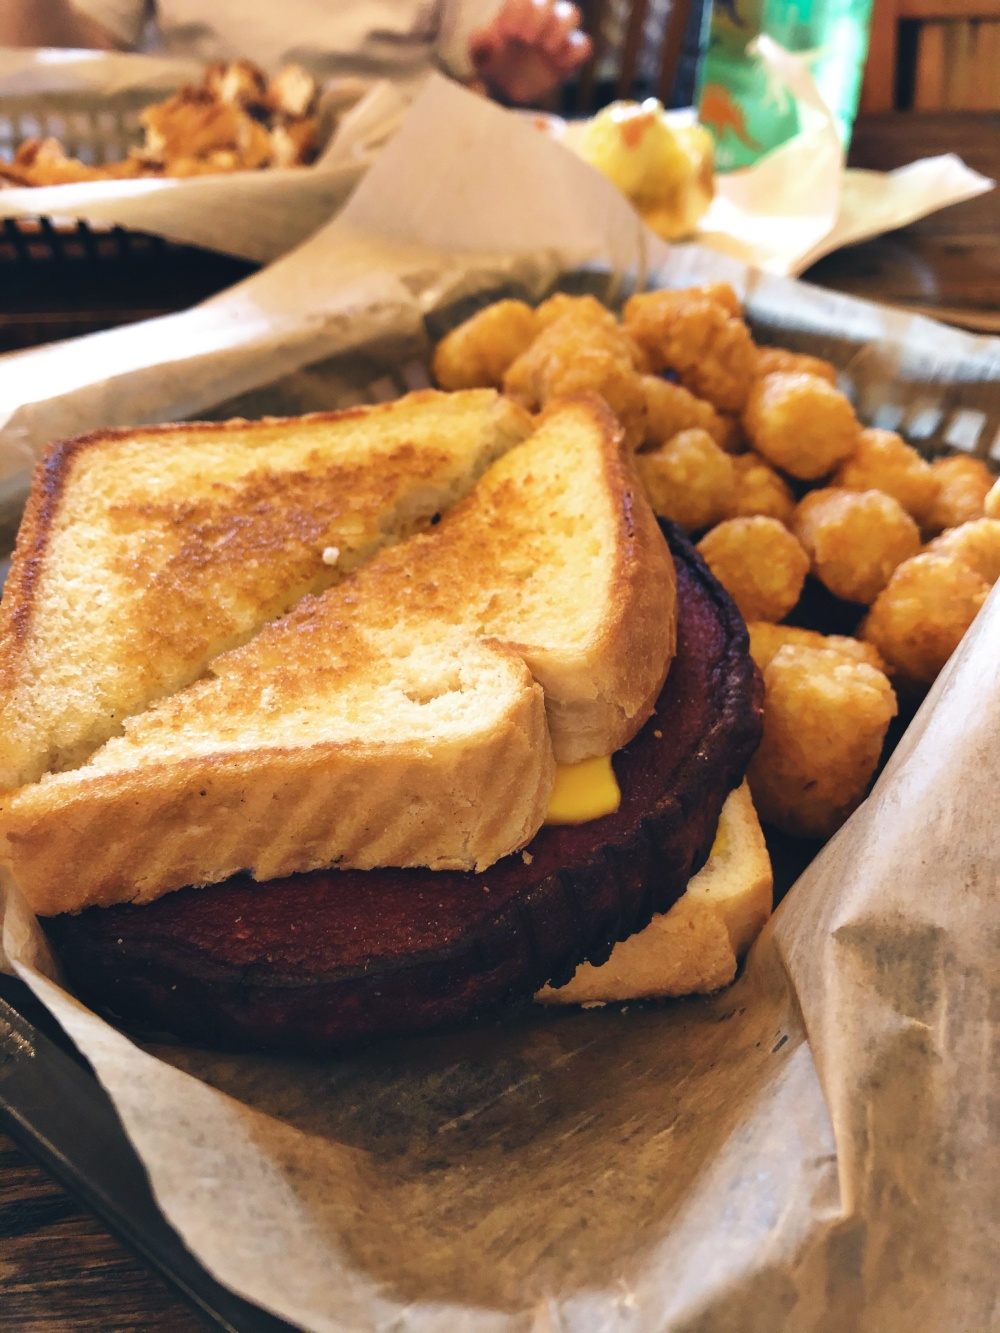 thick slab of fried bologna sandwiched between two slices of American cheese and white bread at Town Square Social in Lebanon, TN